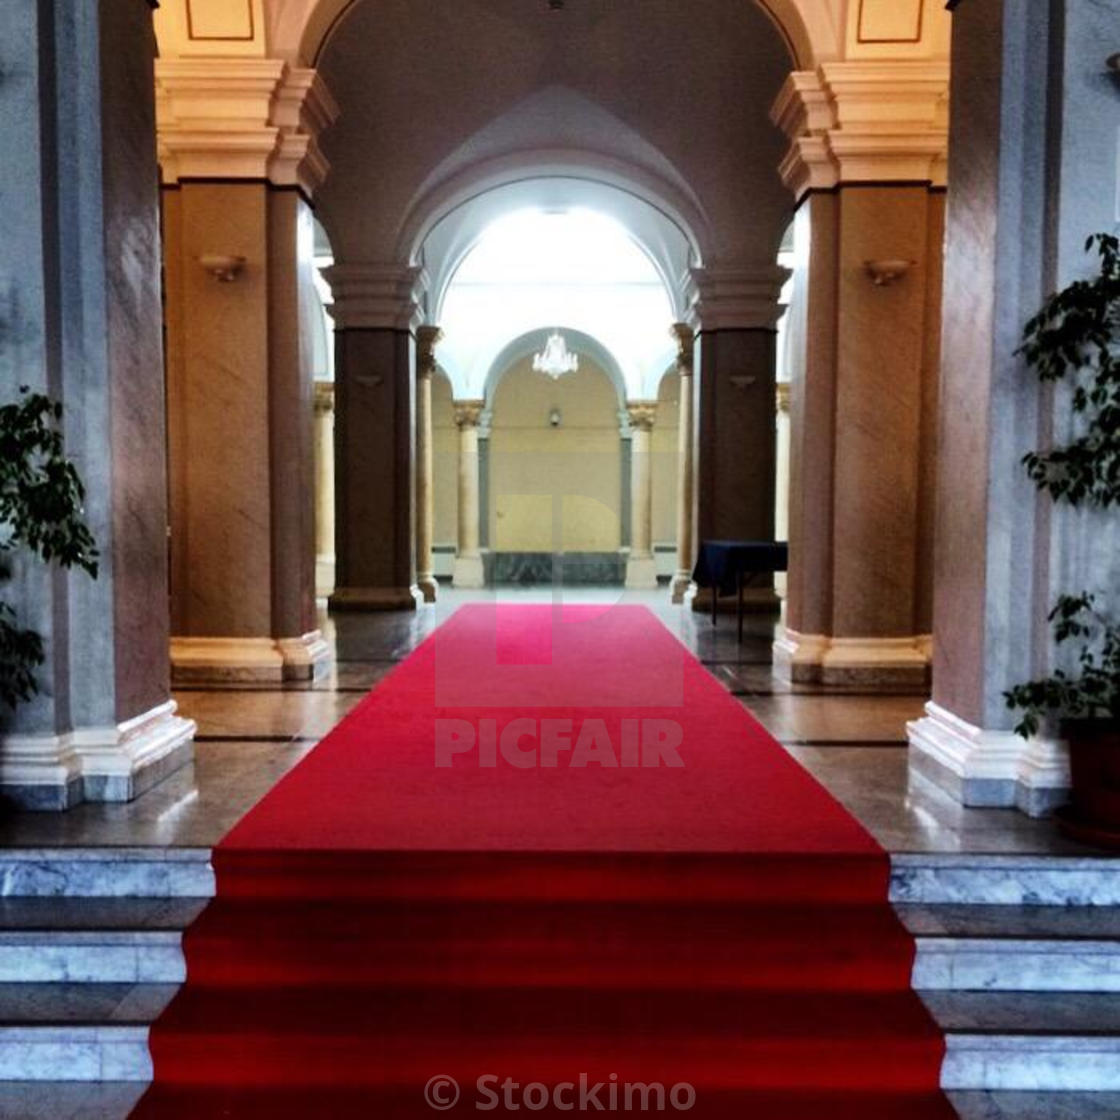 """Red carpet, Zagreb, Croatia, Balkans"" stock image"